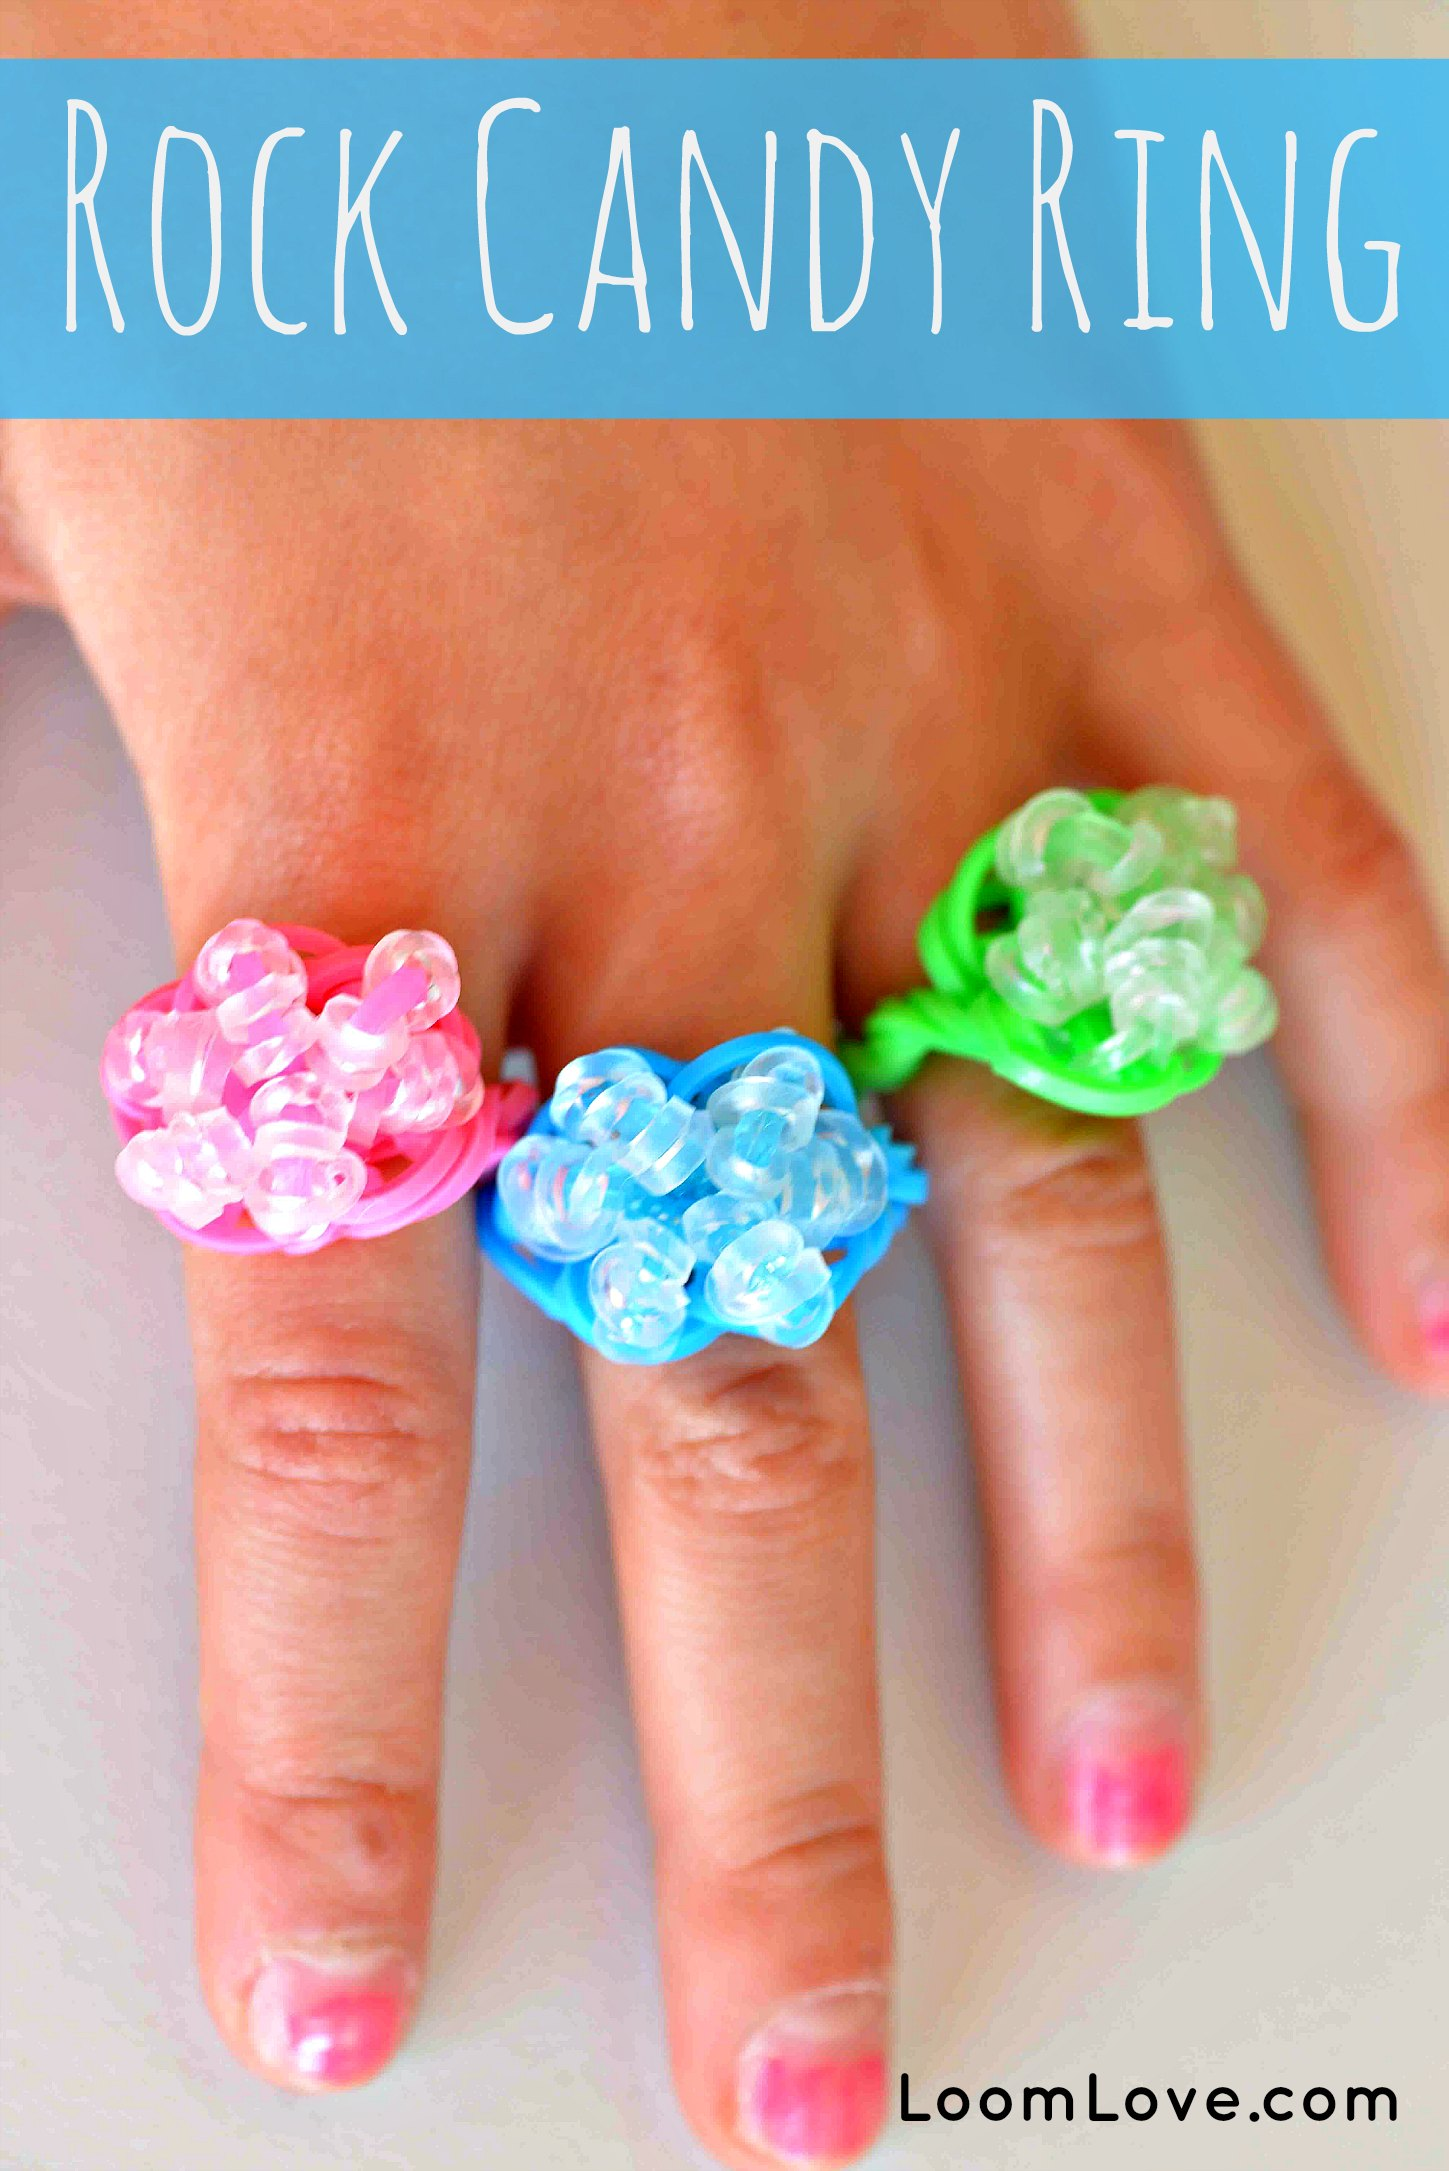 How To Make A Rainbow Loom Rock Candy Ring